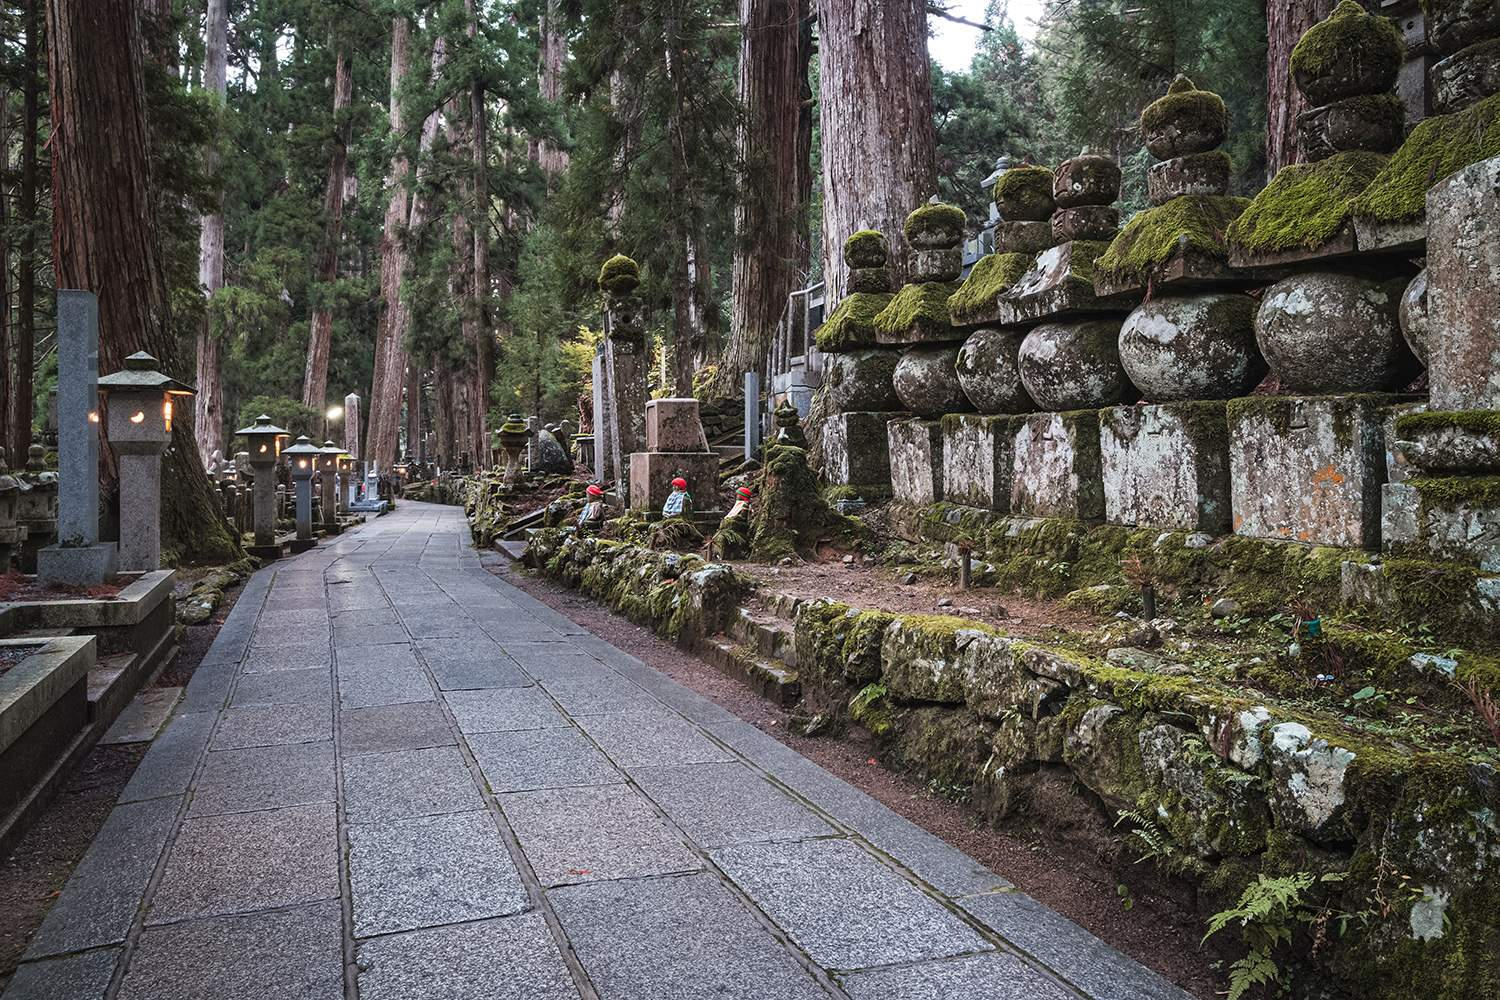 Pathway in Ancient Graveyard inside a Forest, Okunoin Cemetery, Koyasan, Japan 1591283356